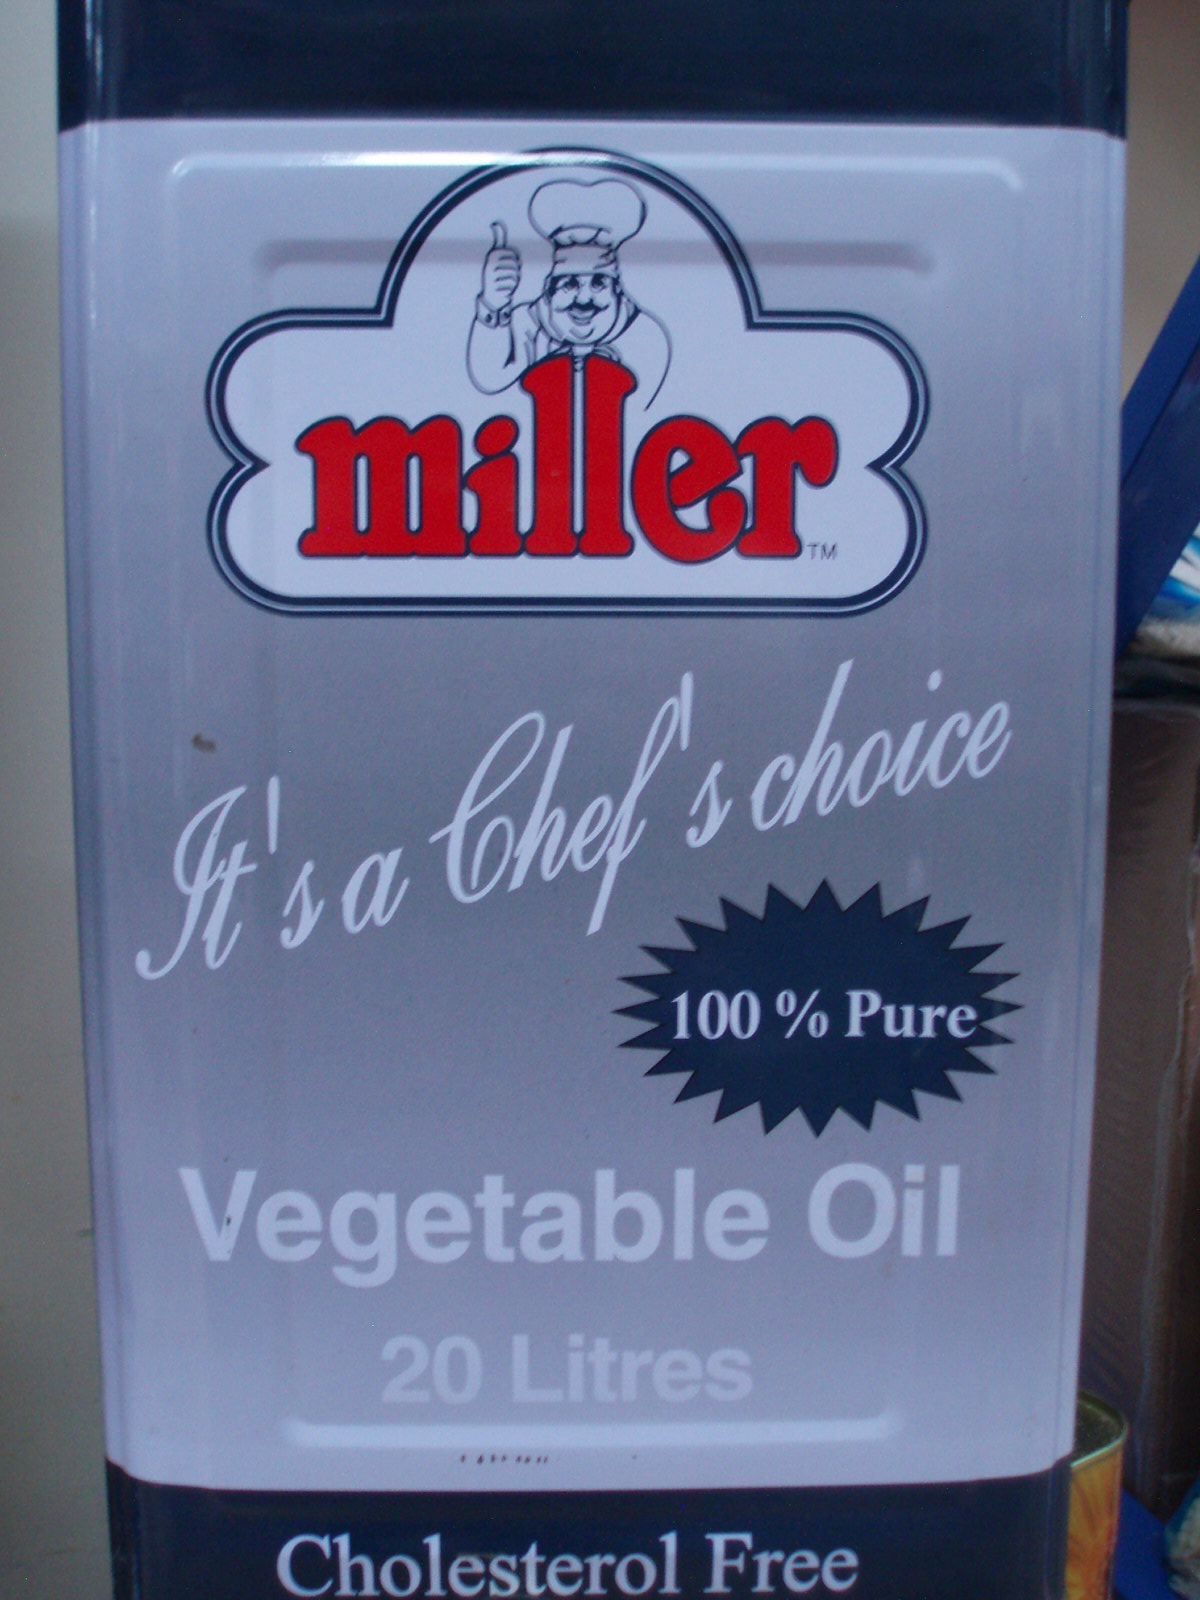 Vegetable Oil-Miller-20 ltr